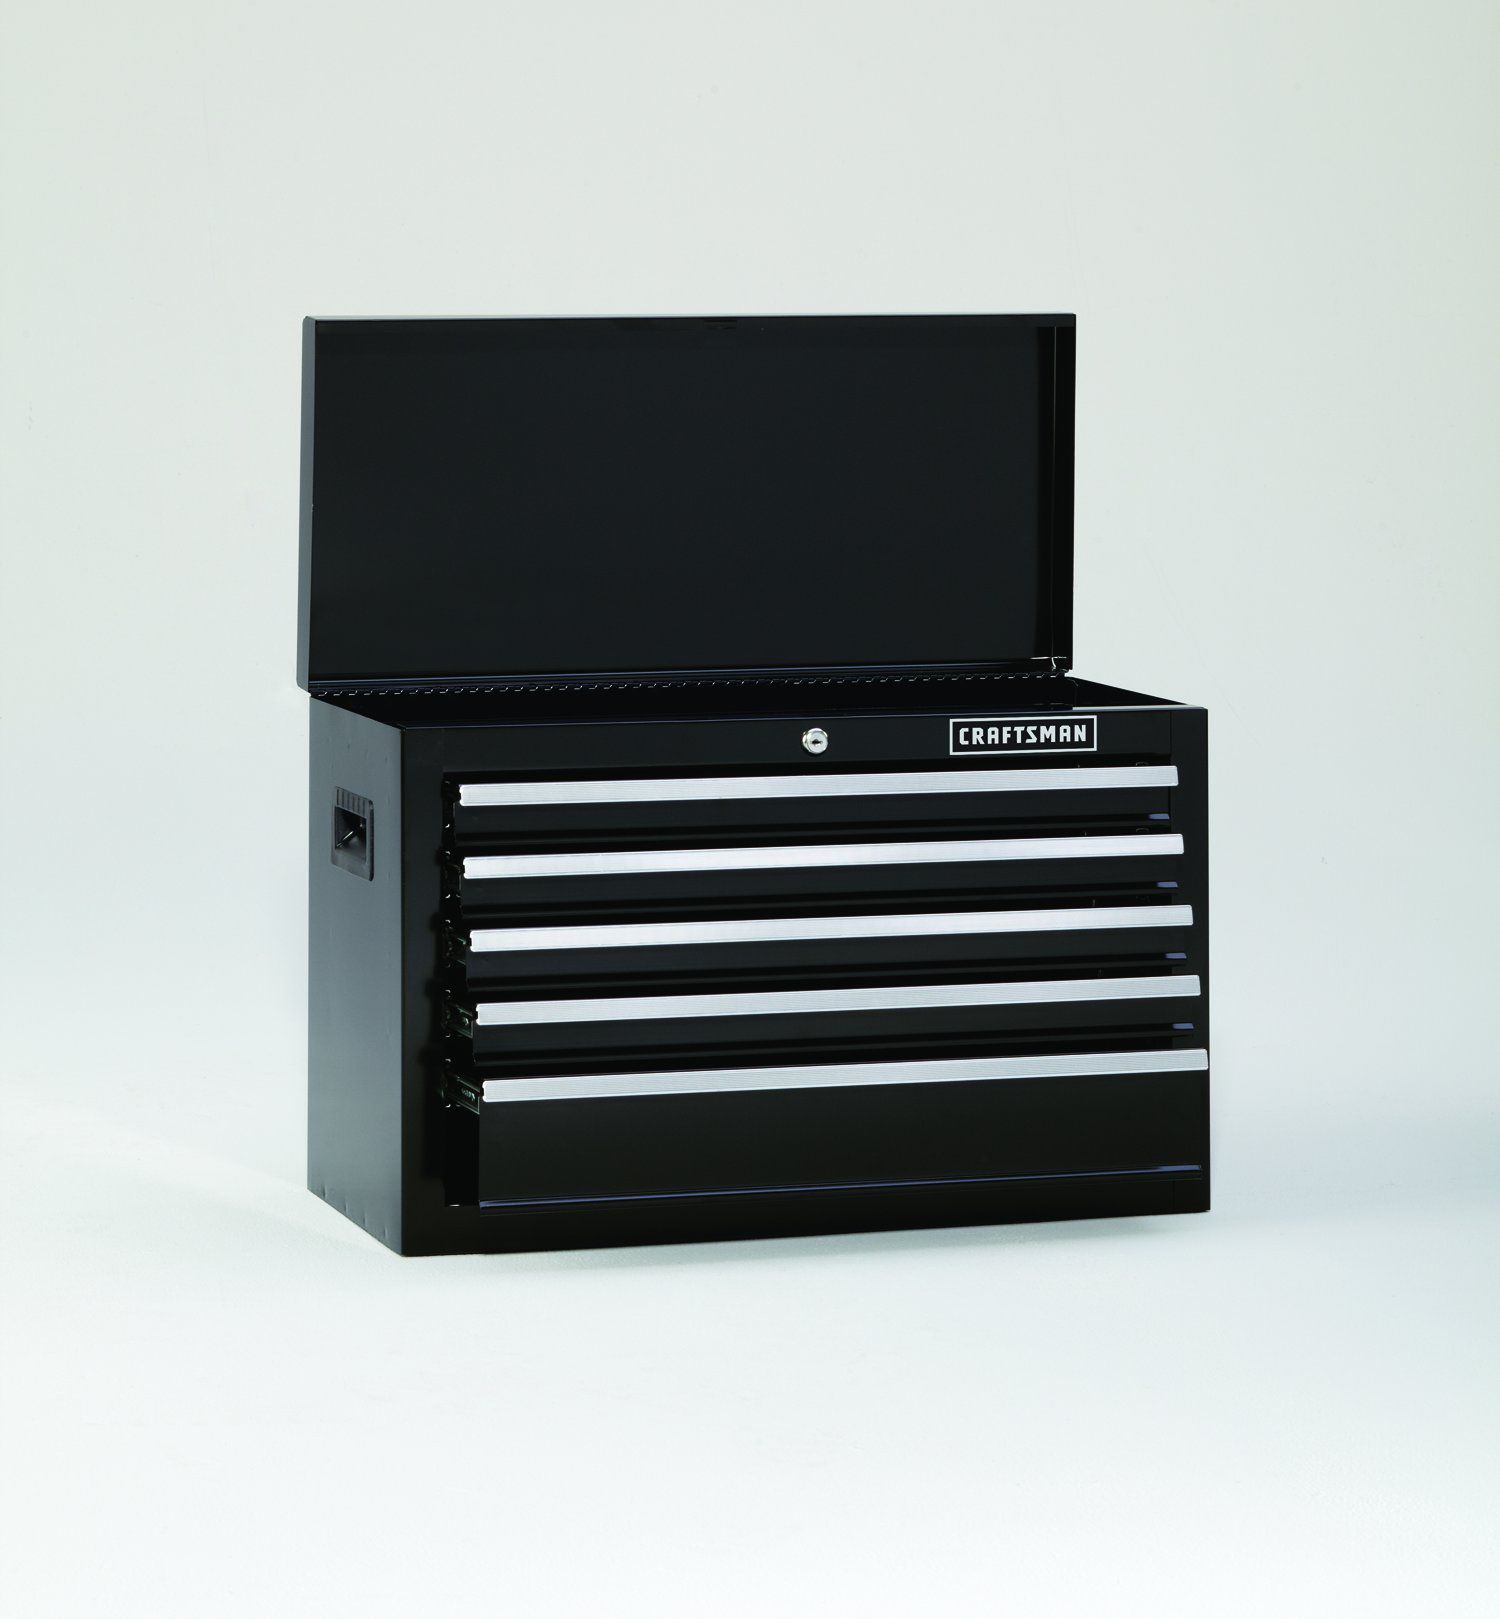 Craftsman 5 Drawer Basic Chest - Black